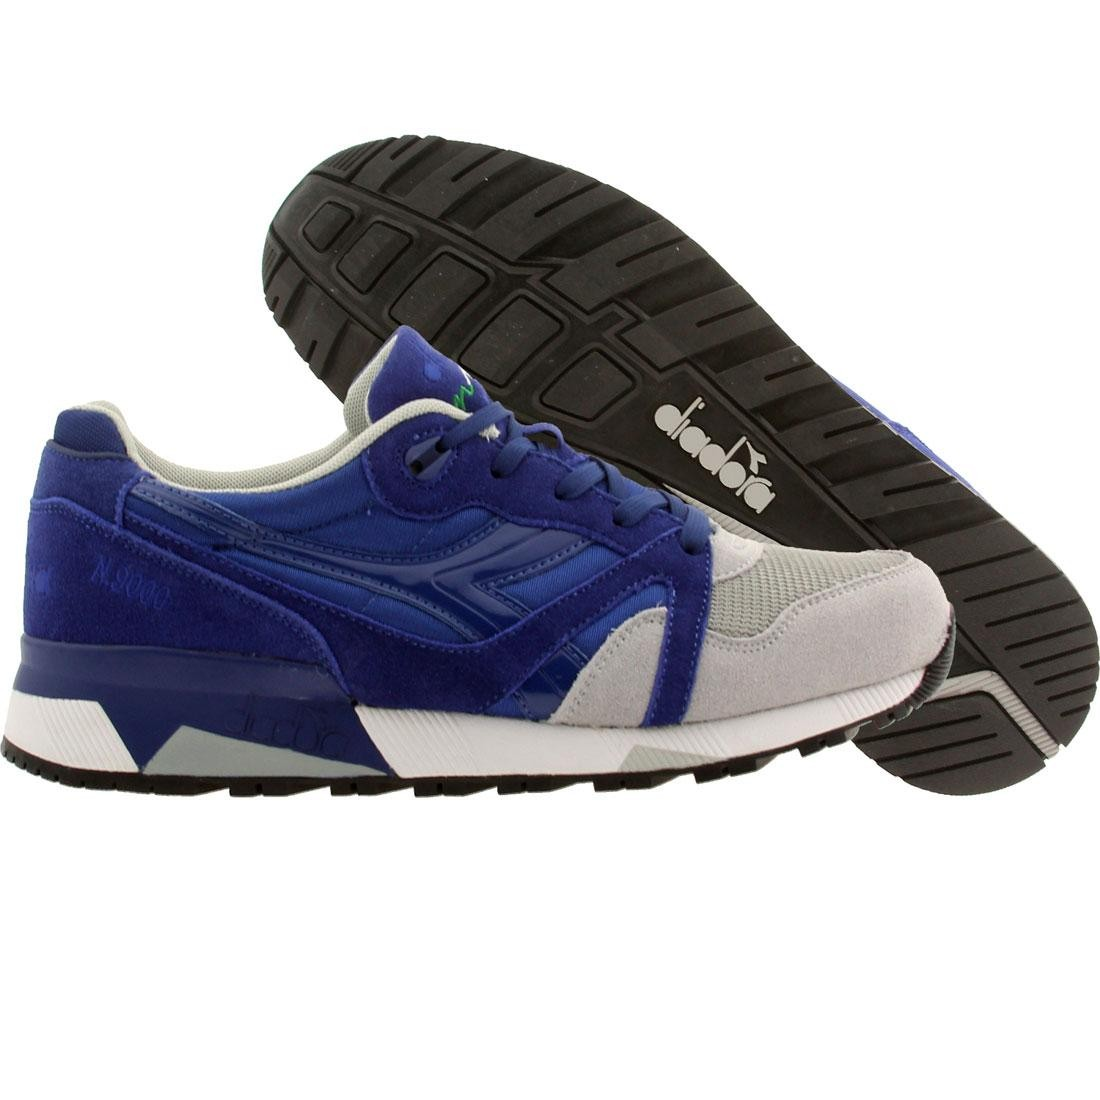 【海外限定】靴 スニーカー 【 DIADORA MEN N9000 NYL BLUE LIMONGES ALASKA GRAY 】